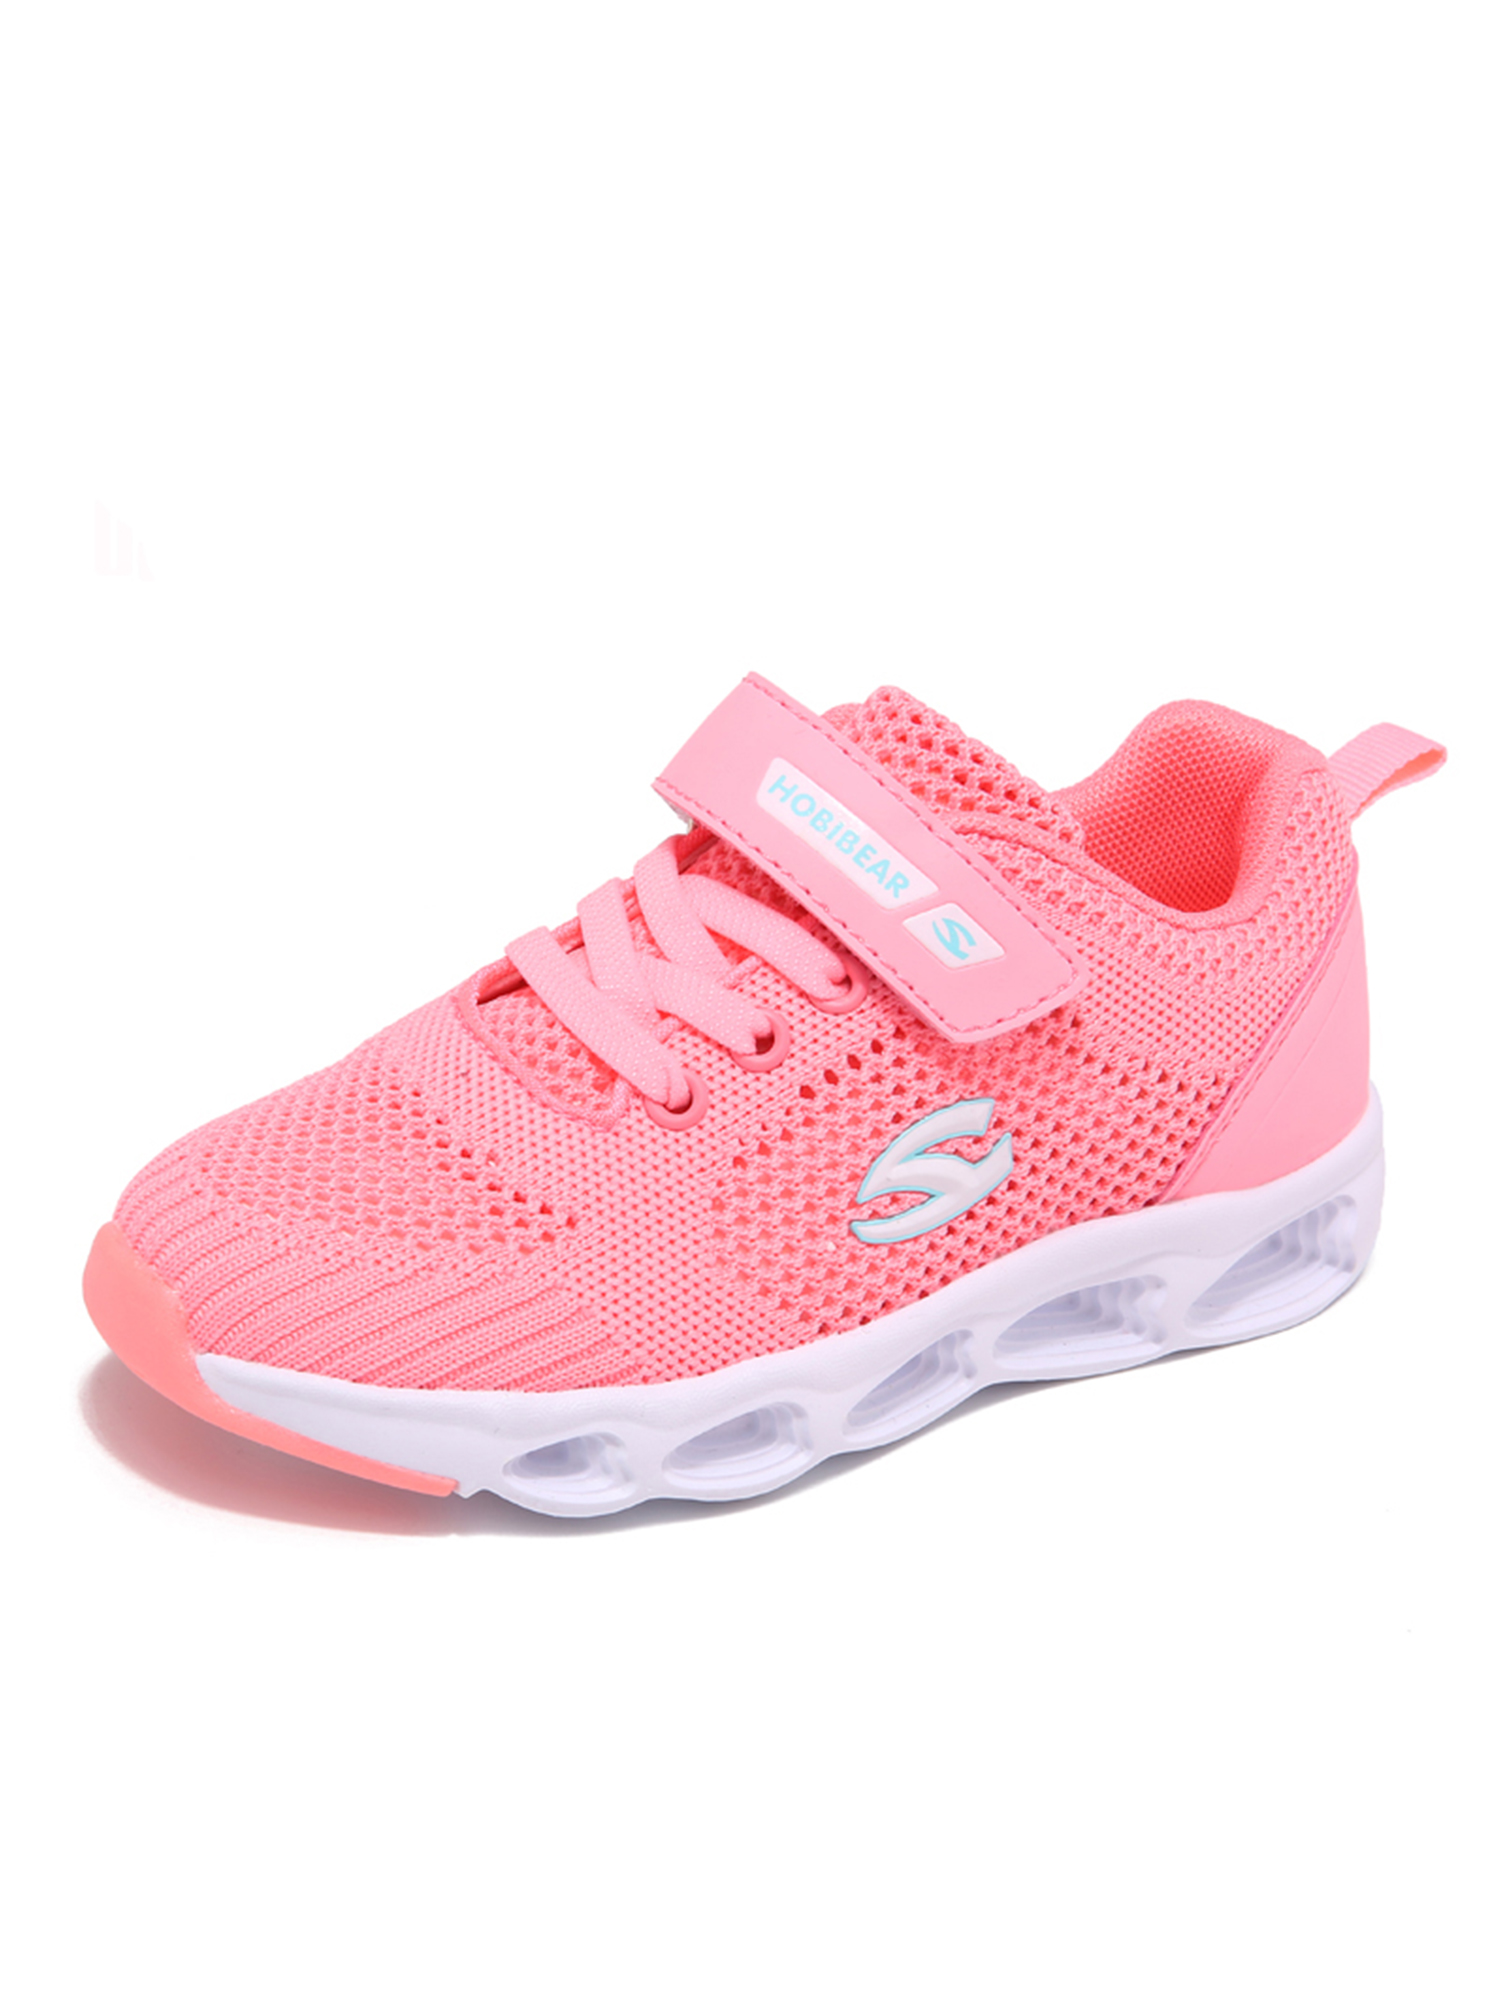 Kids Knit Running Shoes Walking Outdoor Sport Lightweight Casual Mesh Sneakers